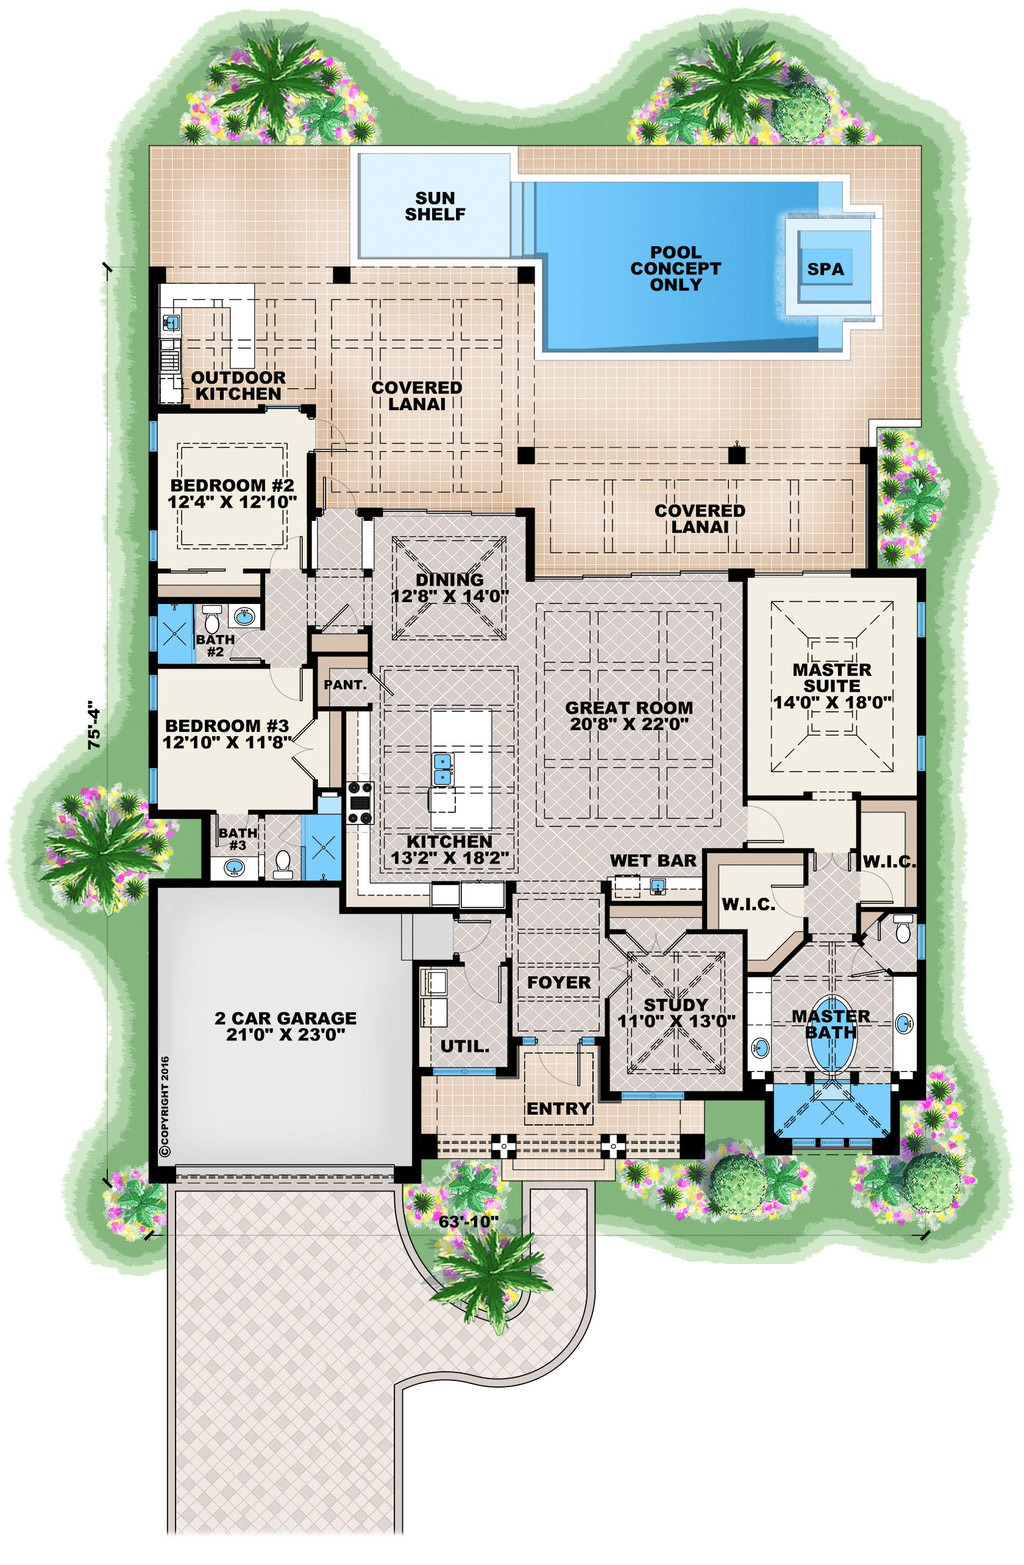 Contemporary House Plans for Sale Lovely Contemporary Style House Plan 3 Beds 3 Baths 2684 Sq Ft Plan 27 551